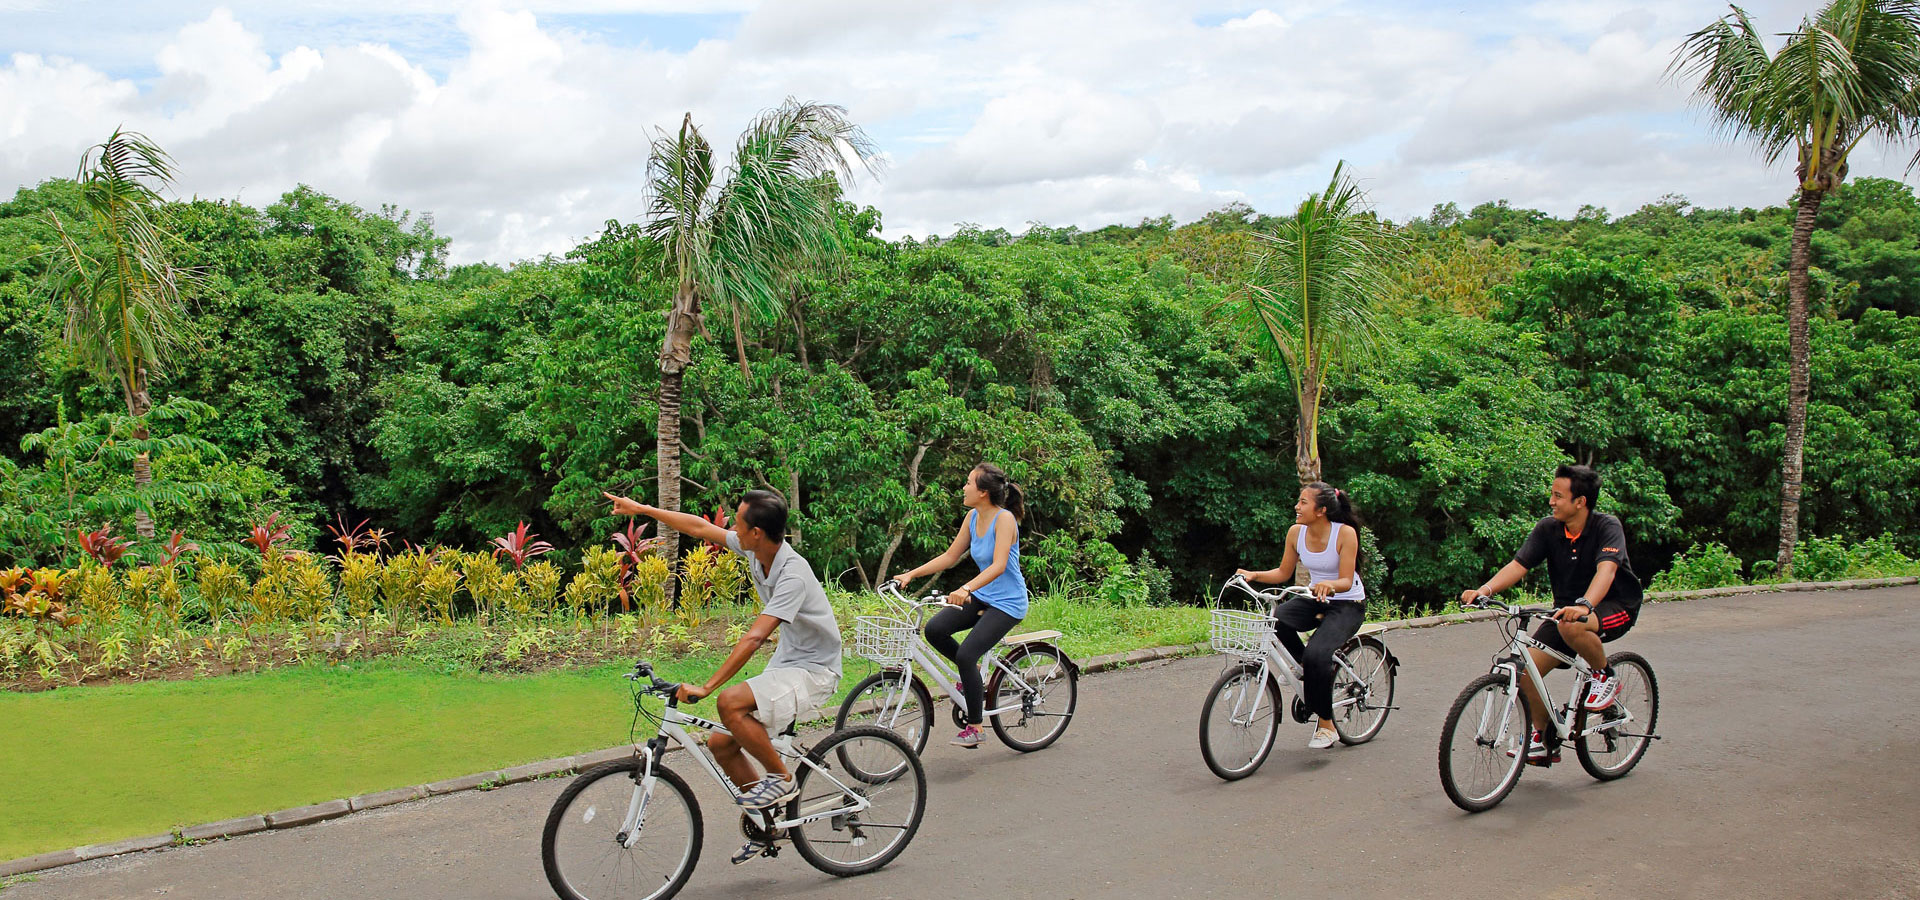 Bicycle Tour sport and adventure at samabe